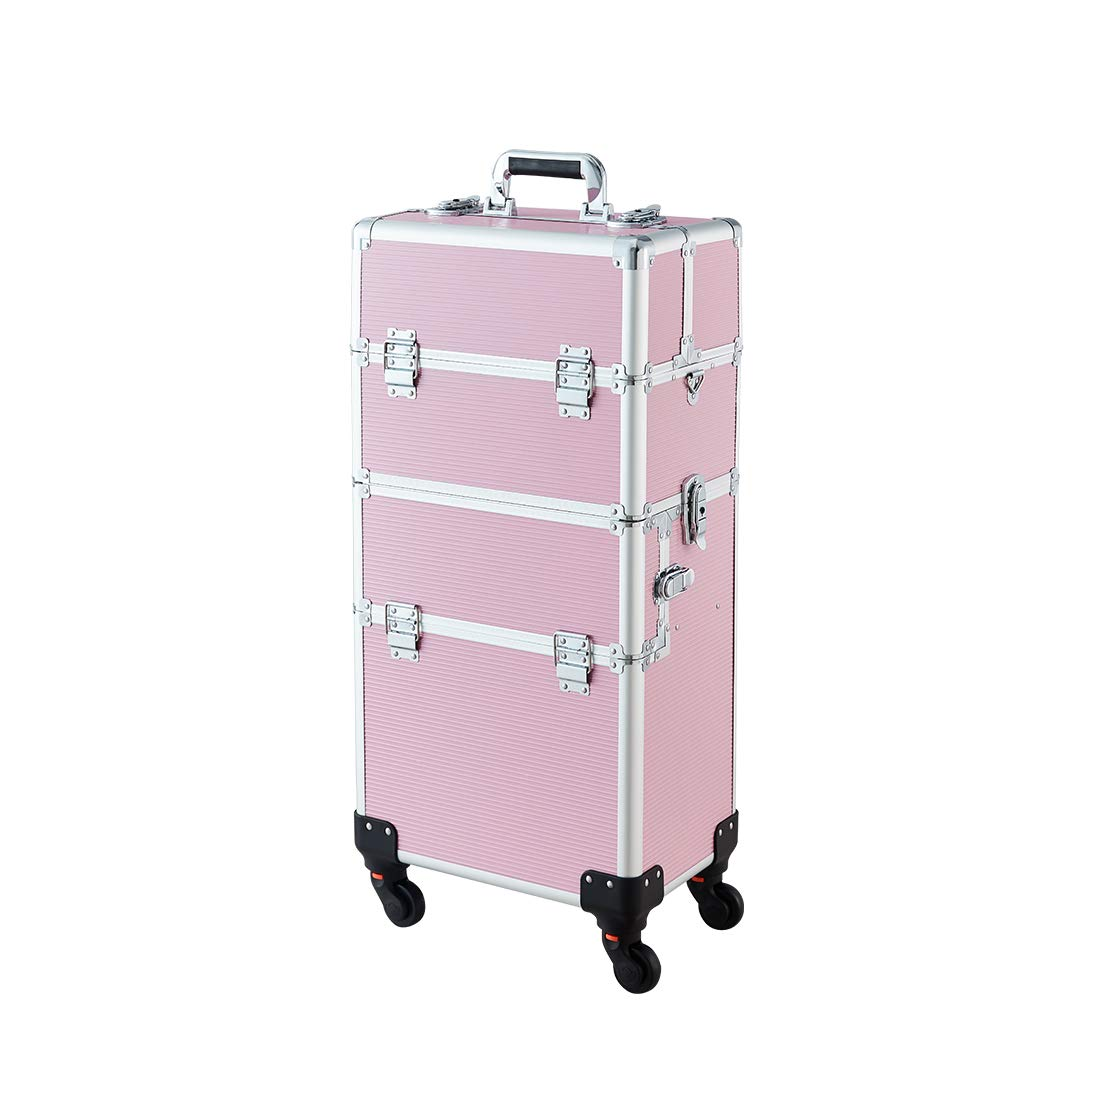 Makeup Case - 3 In 1 Aluminum Professional Rolling Cosmetics Storage Organizer With Locks and Folding Trays Pink